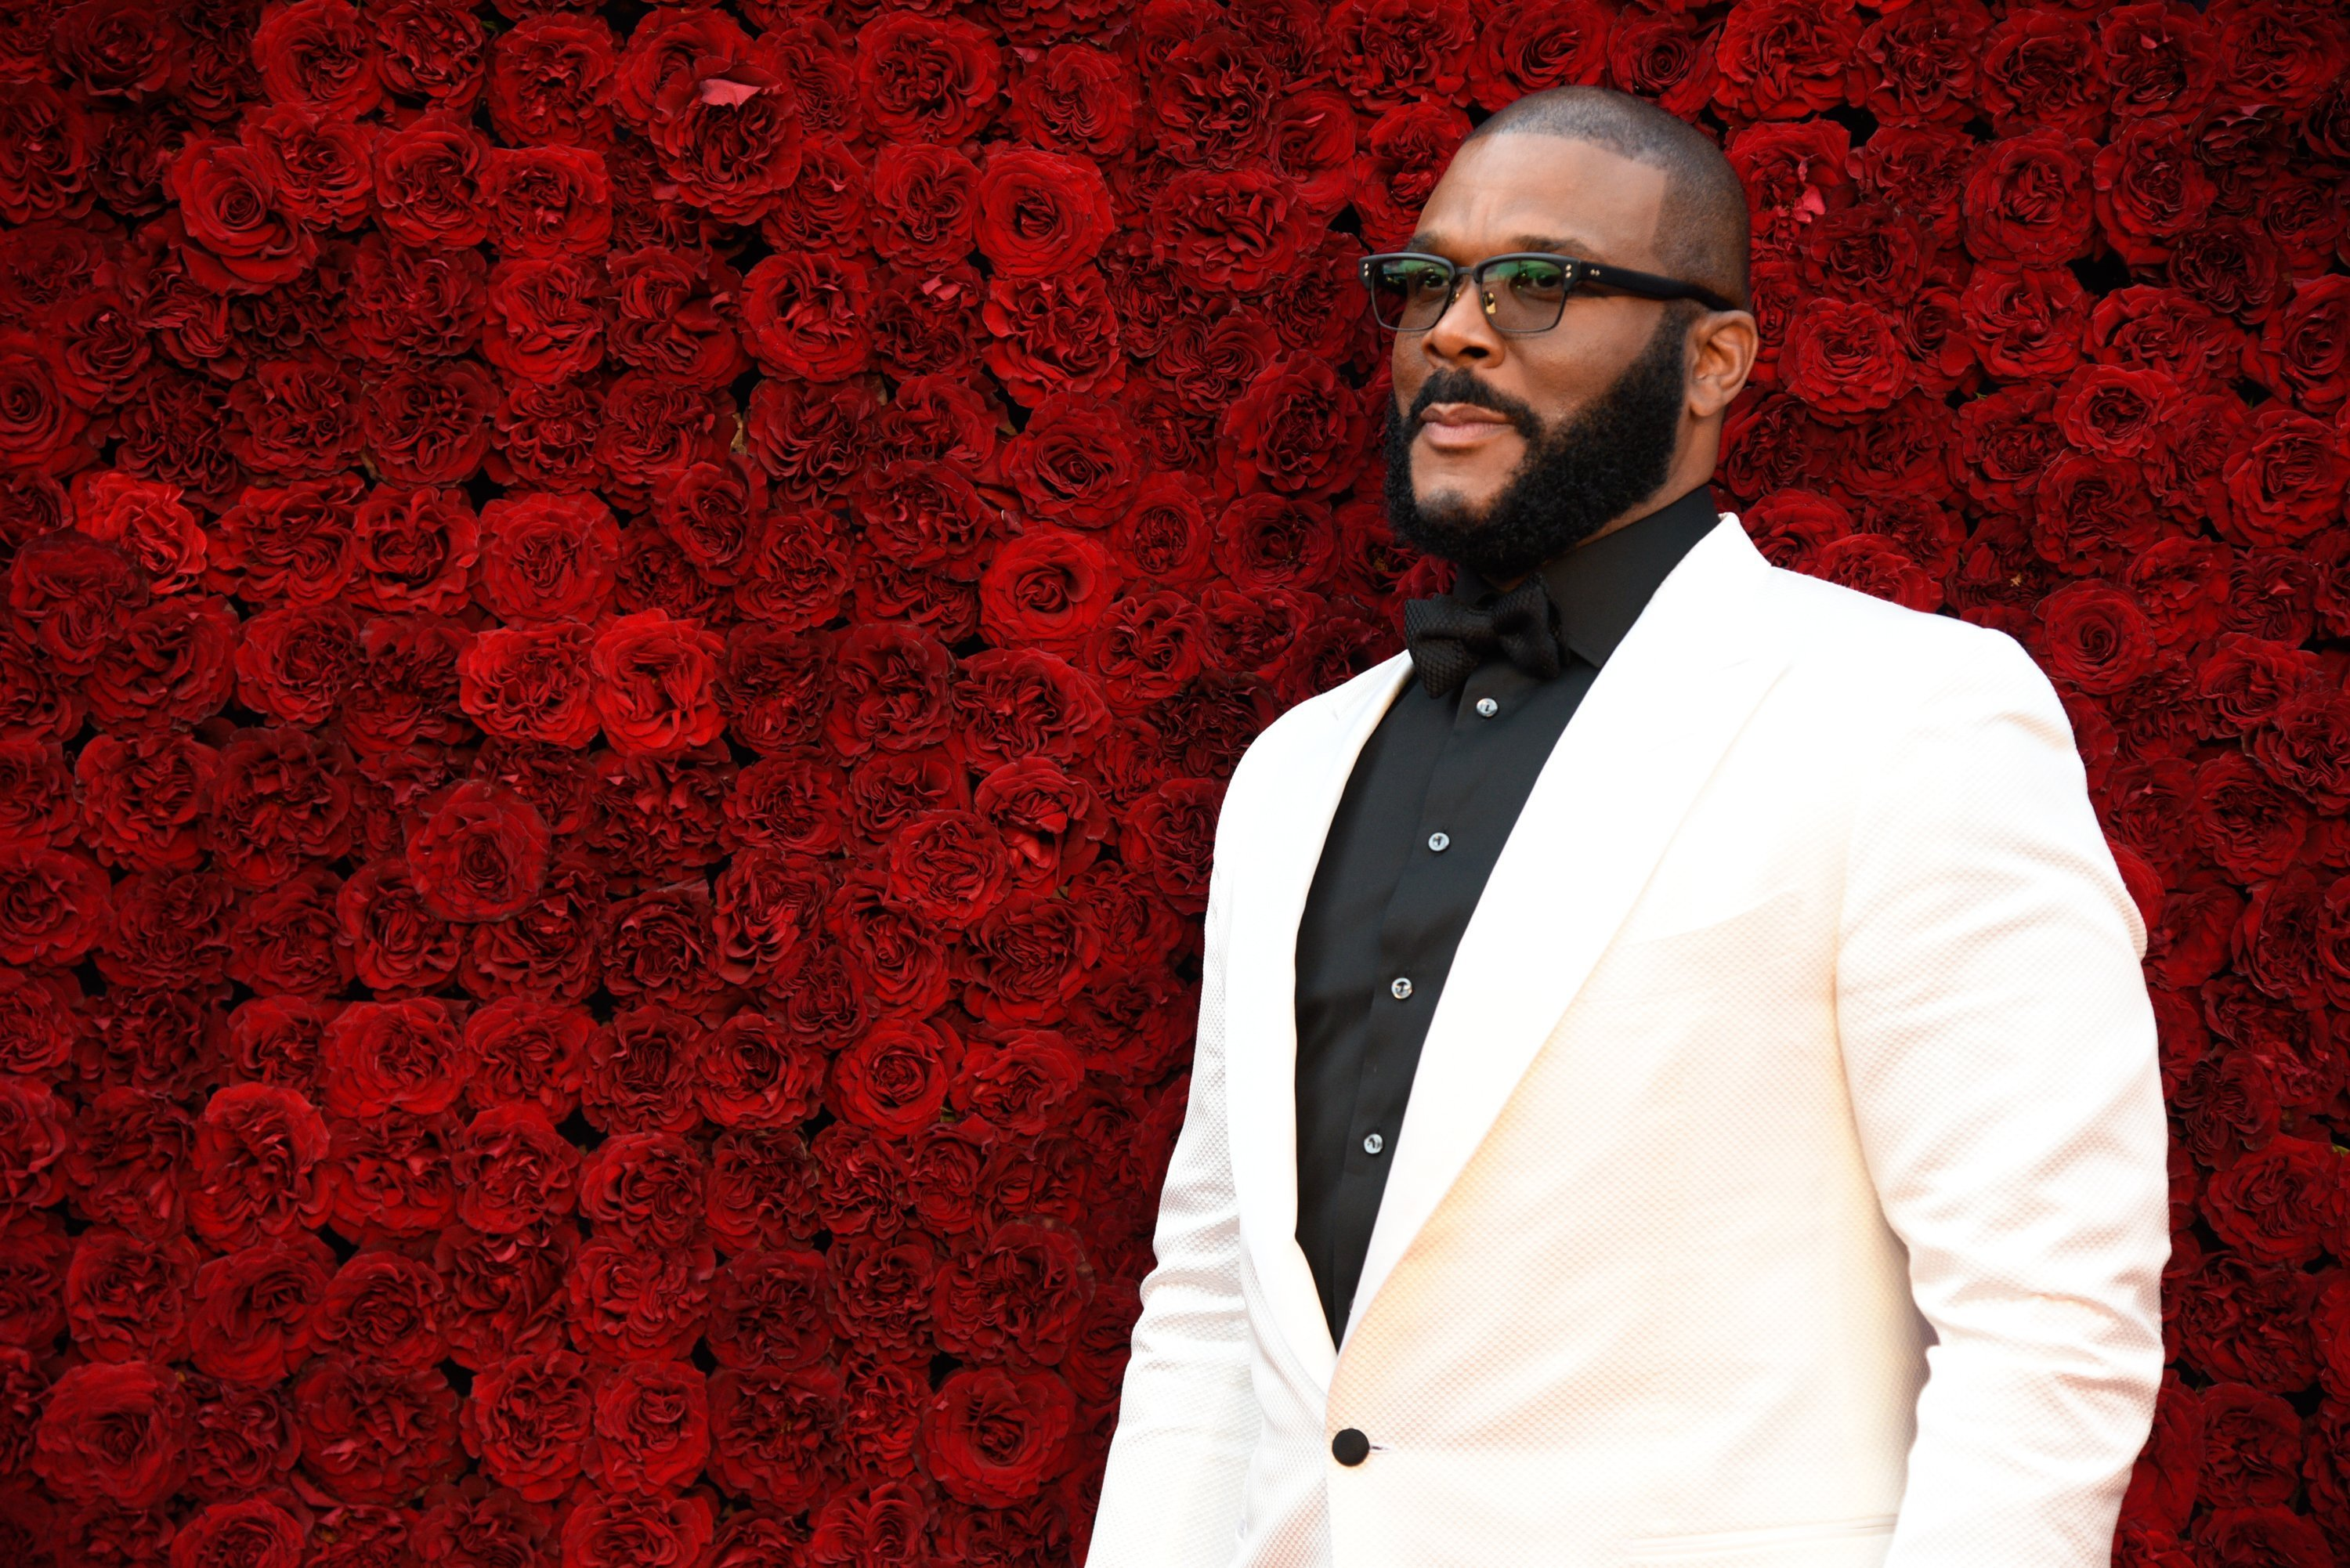 Tyler Perry attends Tyler Perry Studios grand opening gala at Tyler Perry Studios on October 05, 2019   Photo: Getty Images